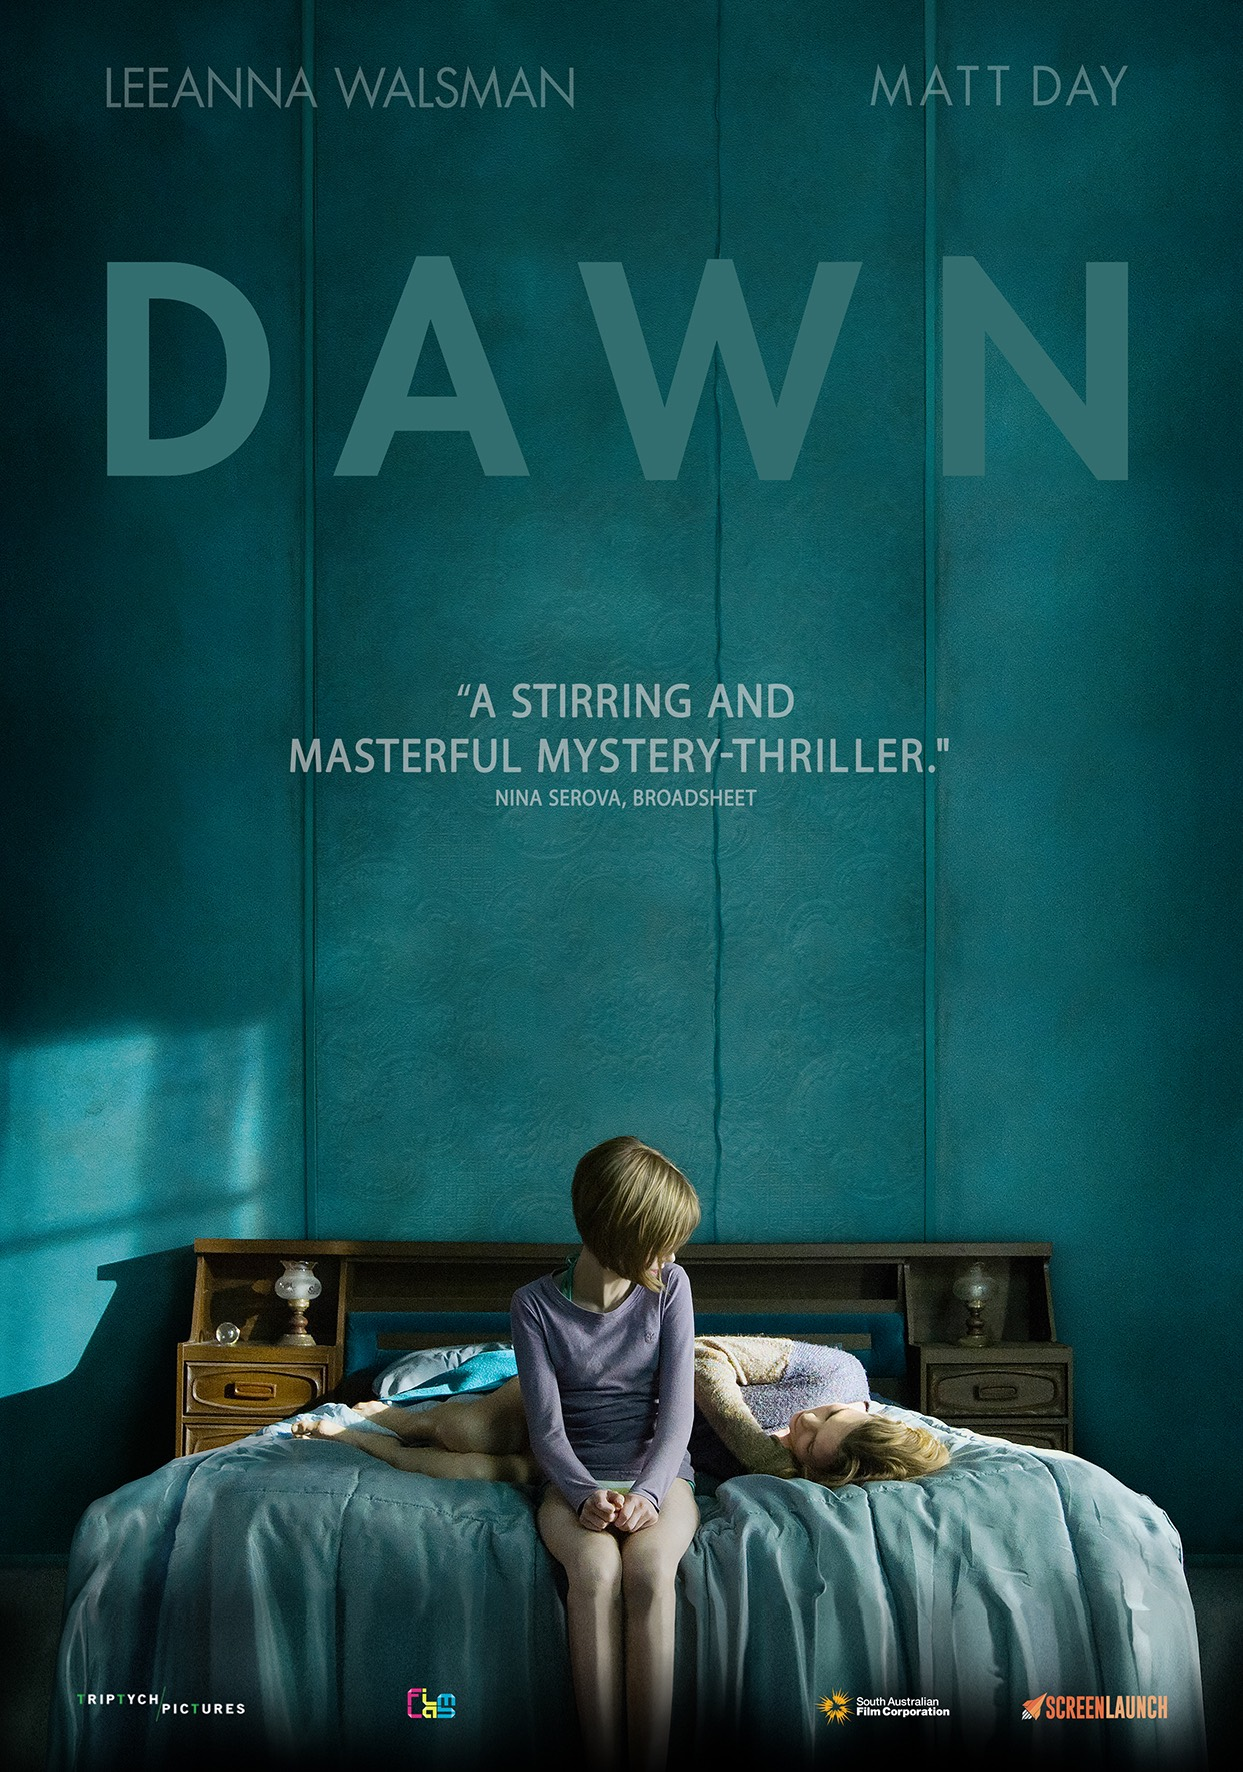 DAWN - tells the story about the nature of love between a mother and her daughter. After committing a violent assault on a familiar stranger, Dawn takes to the road with her daughter in tow. Finding seclusion in a remote motel, and desperate to keep her daughter hidden, Dawn enters into a risky liaison with a local cop. Dawn is hiding from something far greater than her words or actions reveal. Ultimately, her desperation becomes untenable and the past closes in with a devastating twist.Awards & FestivalsTitled TOUCH prior to its US release, DAWN premiered at the Sydney Film Festival in 2014 and internationally at Cannes Cinephiles in 2015. DAWN was selected as the opening night film for the Manchester International Film Festival and awarded Best Feature Film at the Asia Pacific Film Festival in 2015.